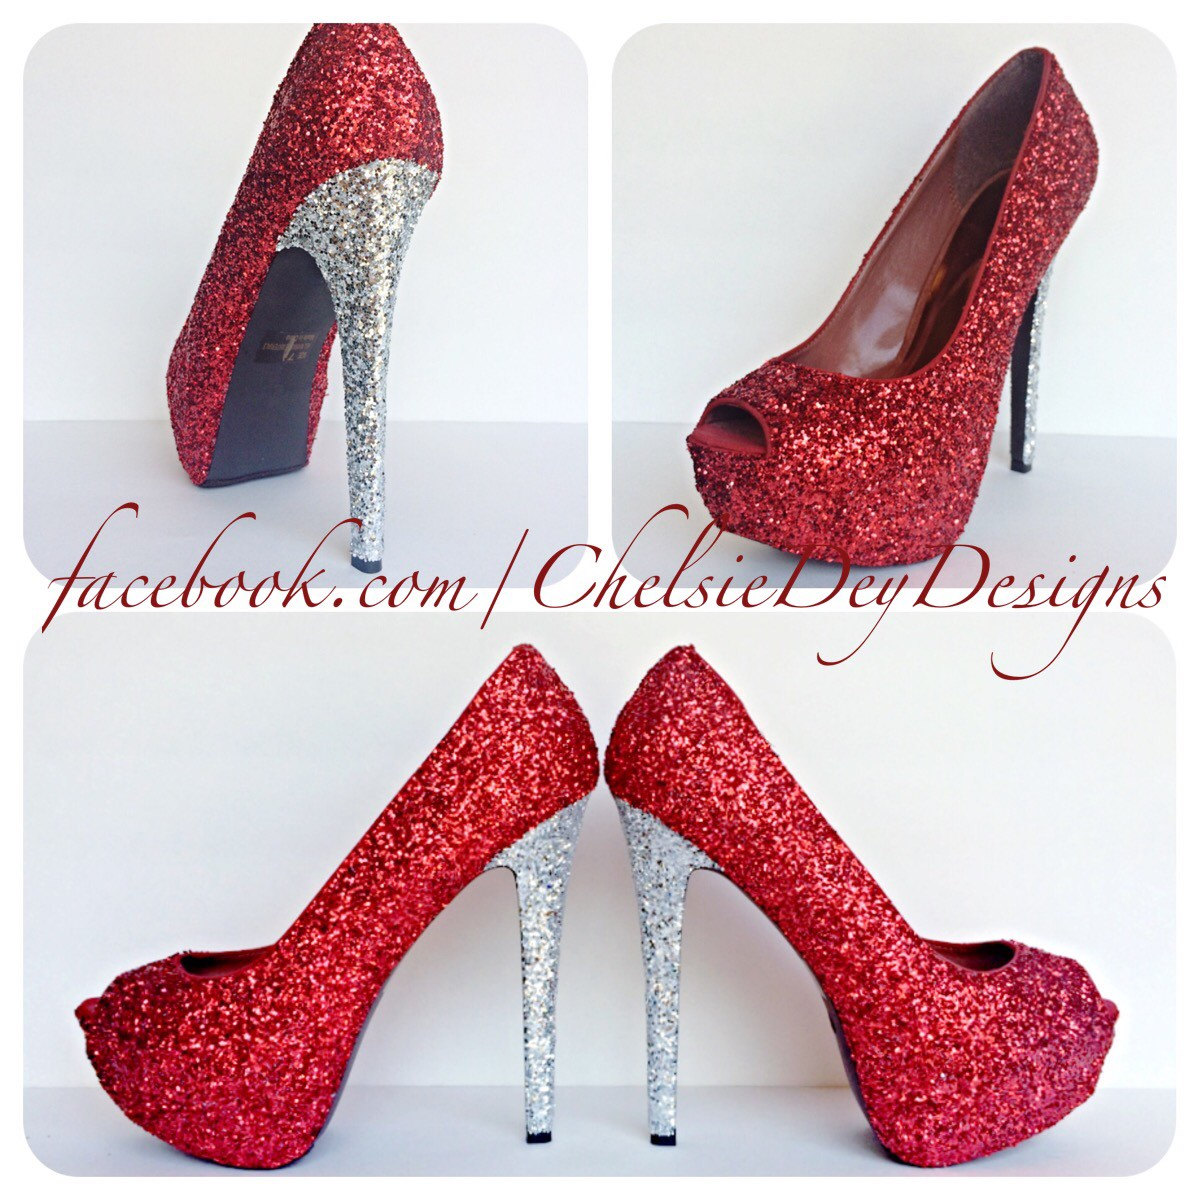 e777e3fd437 Red Glitter Peep Toe Pumps, Crimson Open Toe High Heels, Prom Shoes from  Chelsie Dey Designs